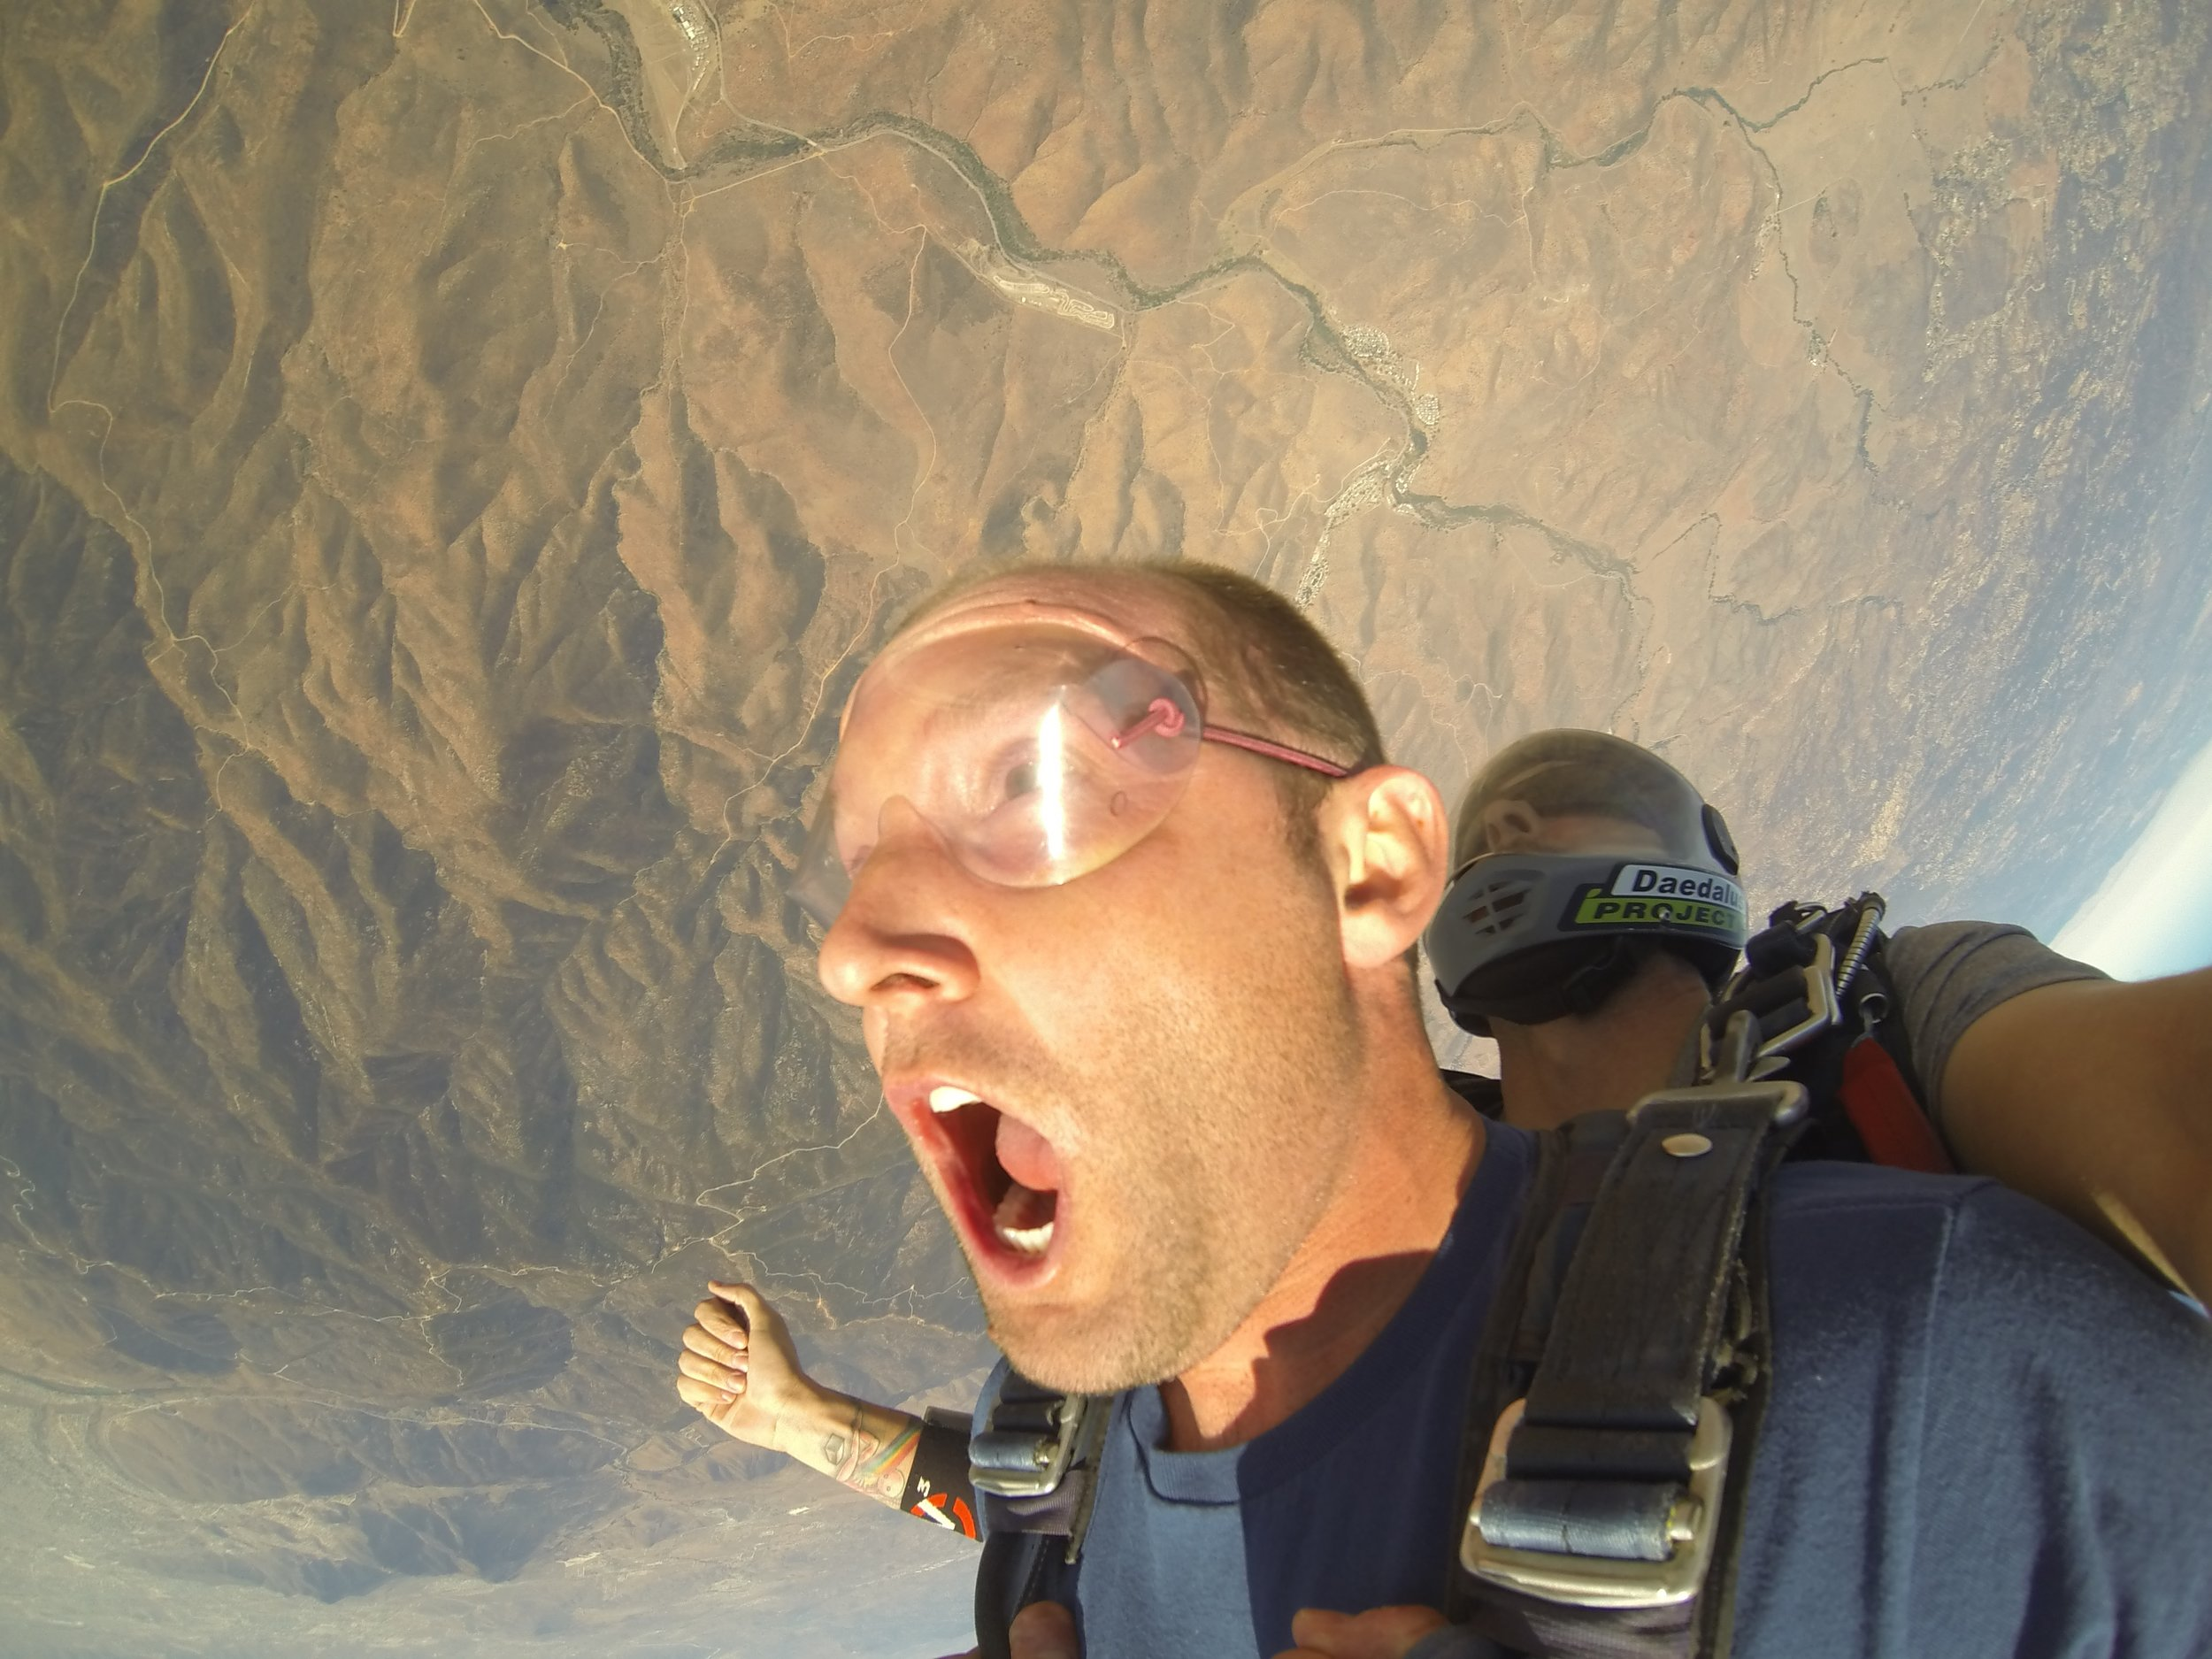 The exhilarating experience of Skydive San Diego